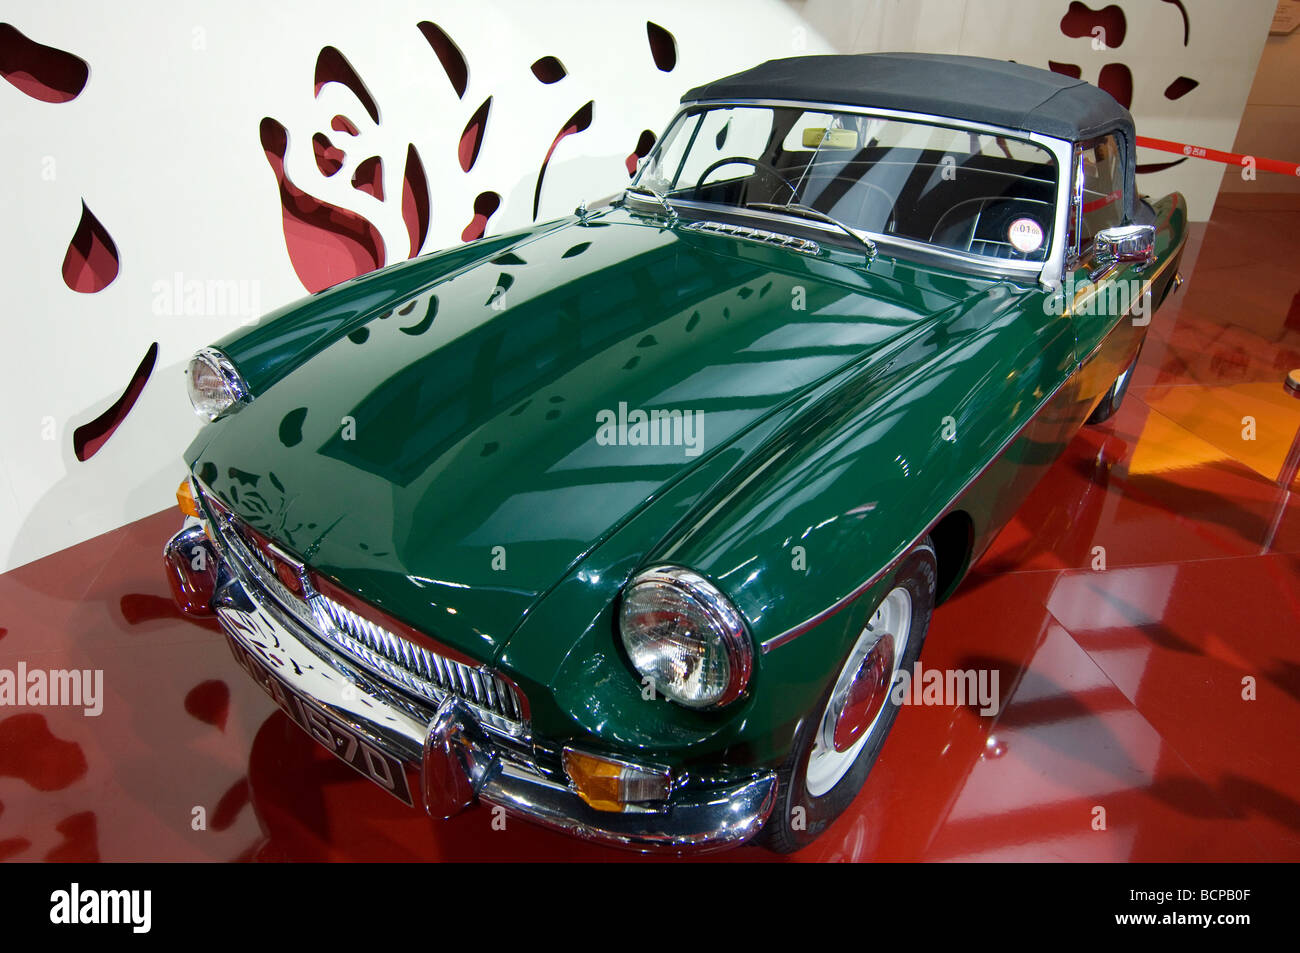 Luxury convertible car on display, 2008 Beijing International Automotive Exhibition, Beijing, China - Stock Image